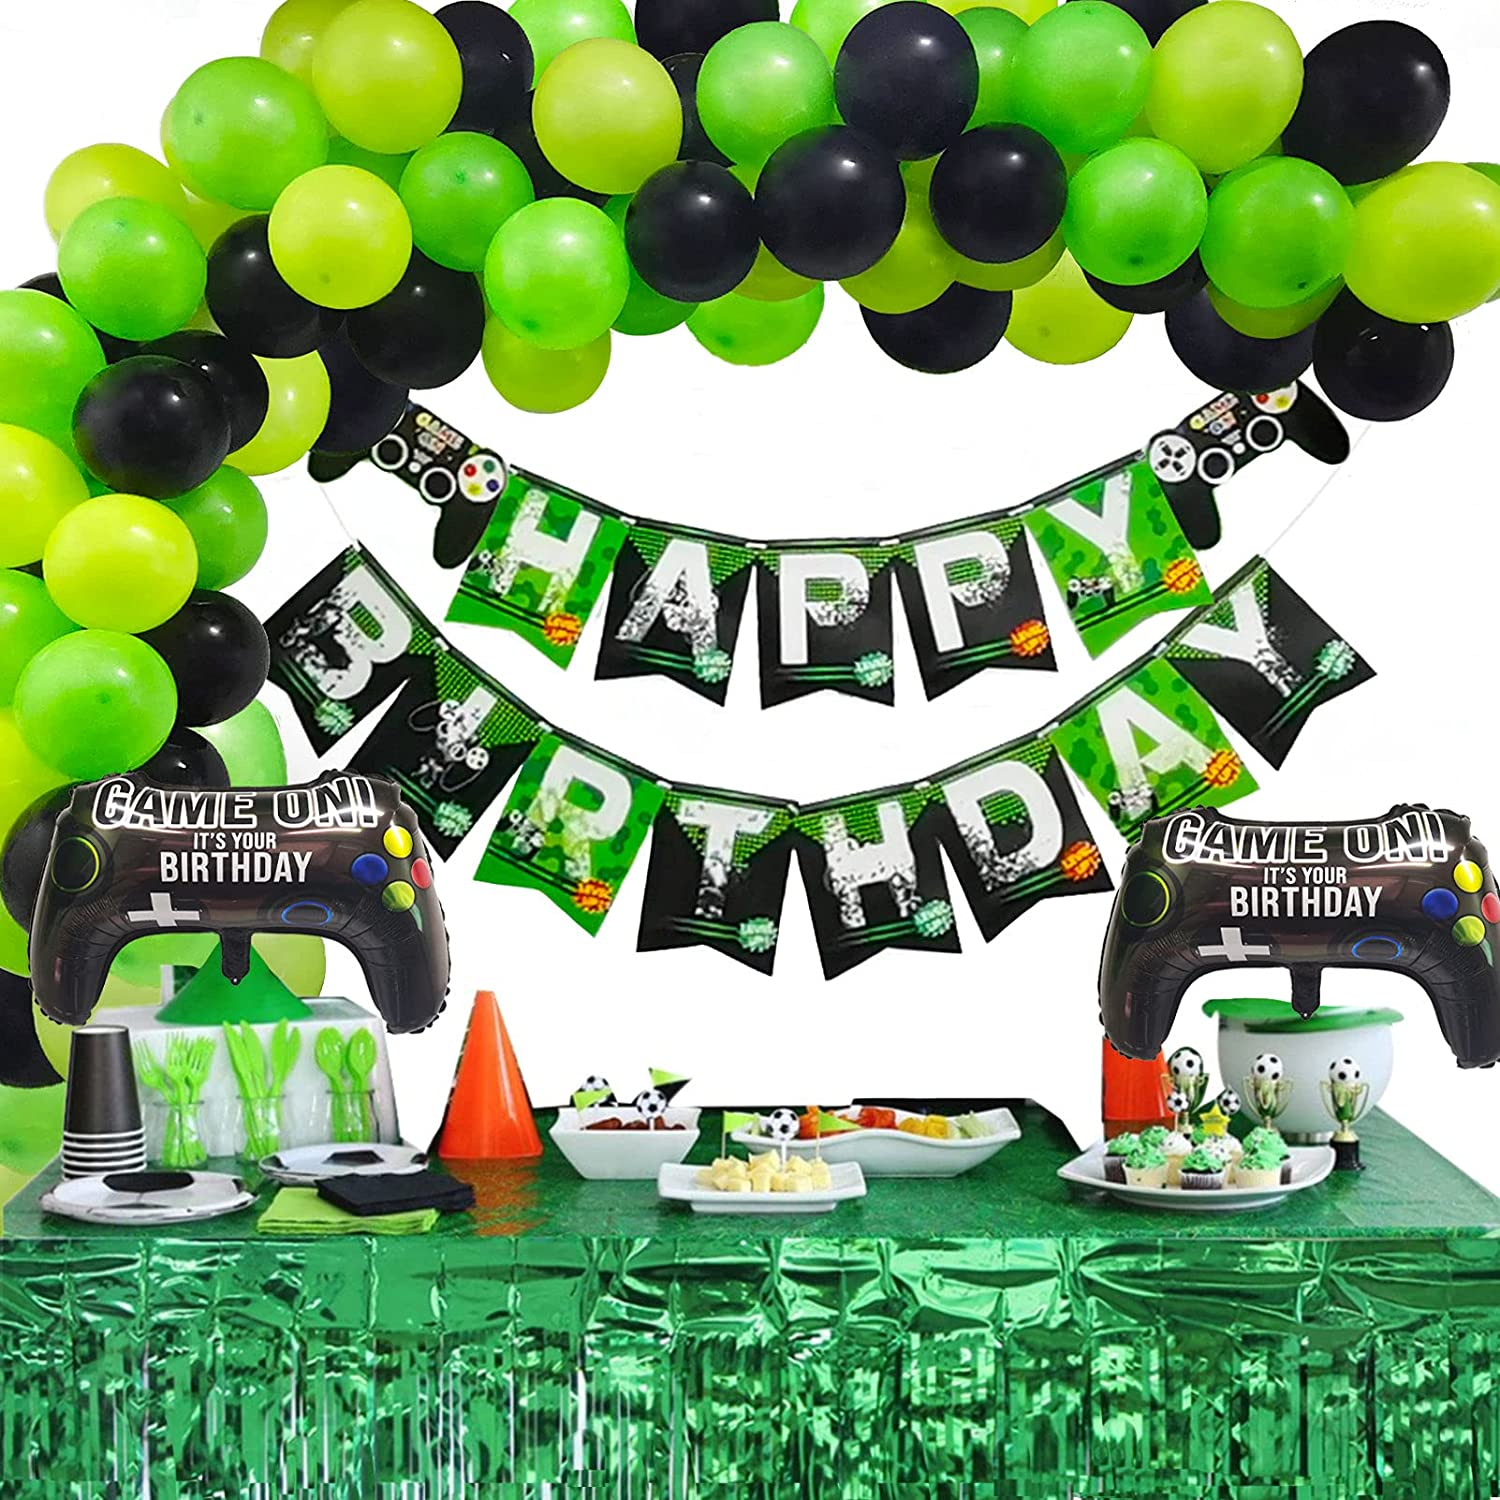 81pcs Gamer Birthday Party Decoration Kit for Boys Happy Birthday Gamer Banner Green Black Balloons Garland Arch Kit and 2 Foil Gamer Controller Balloons for Video Game Gaming Party Decorations